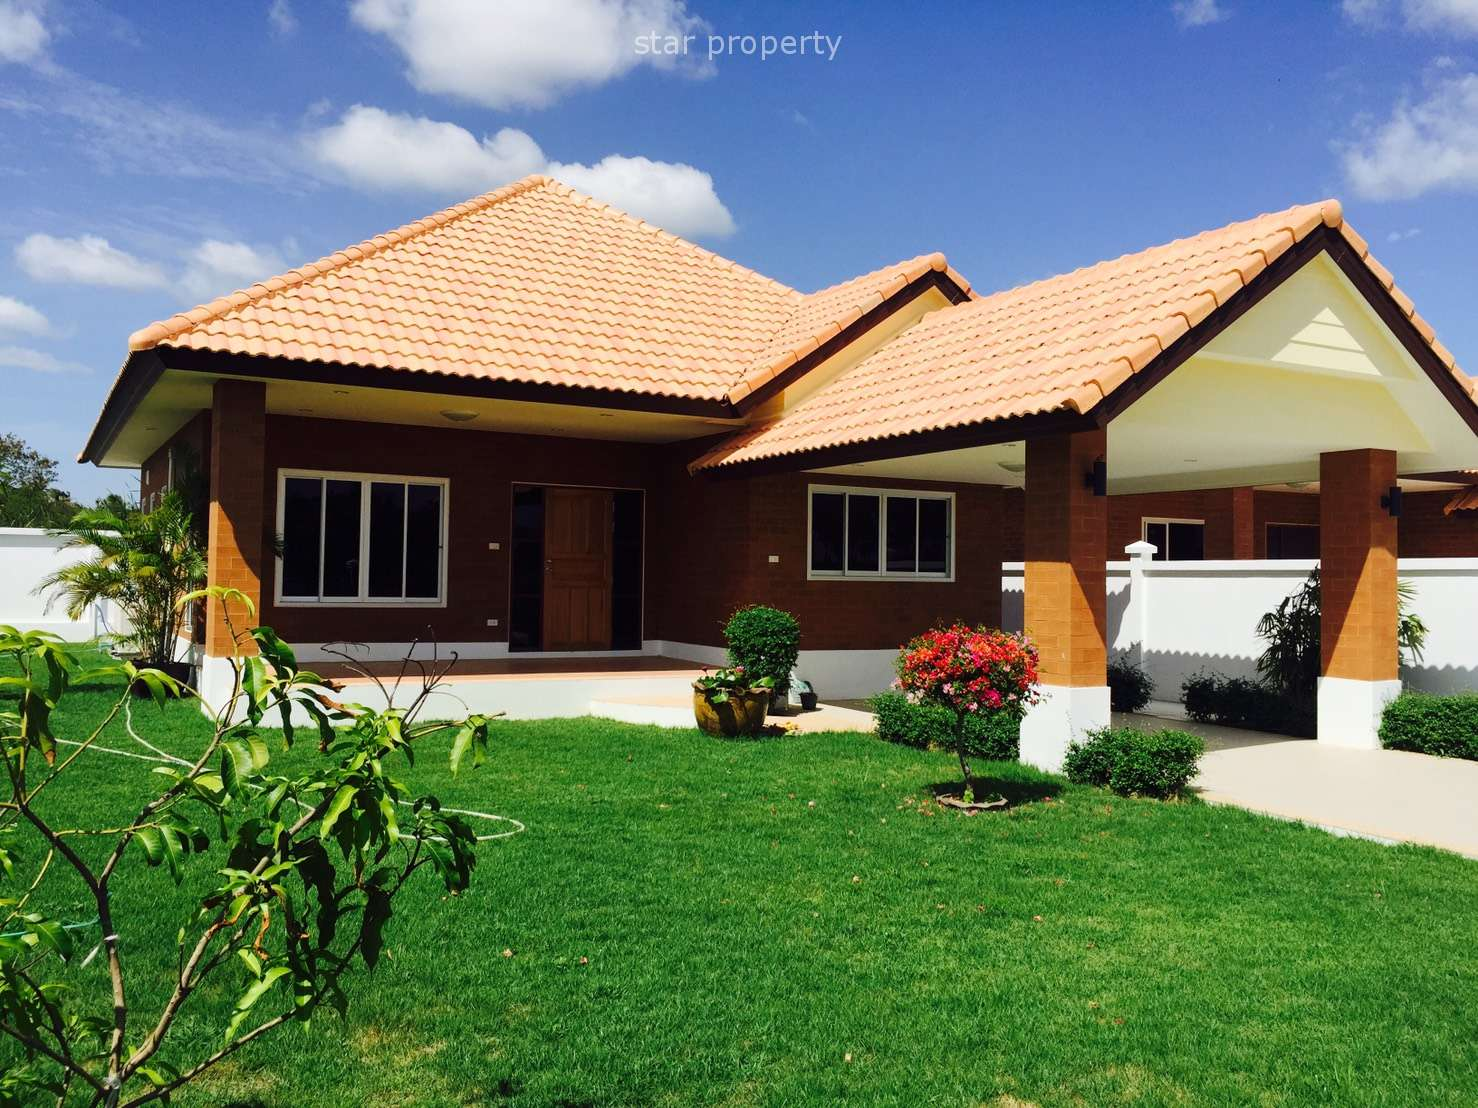 2 Bedroom Bungalow for Sale in Cha Am at Cha Am District